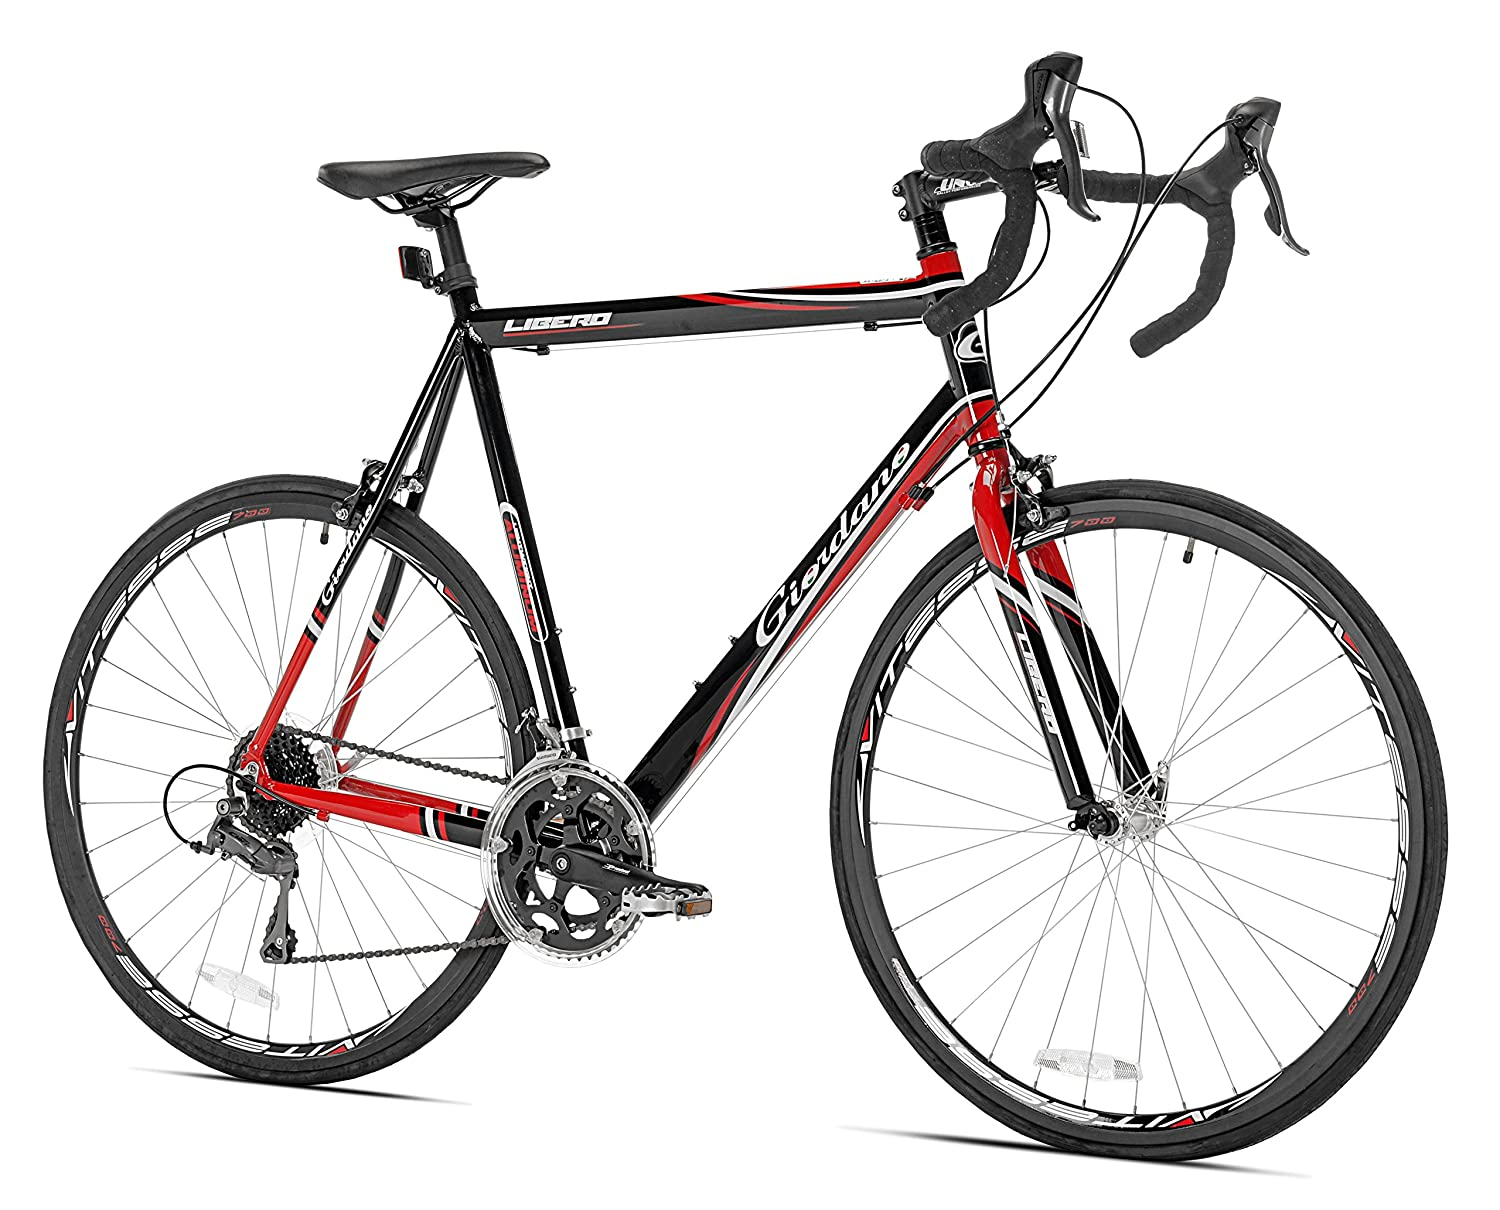 Giordano Libero 1.6 Men's Road Bike 700c